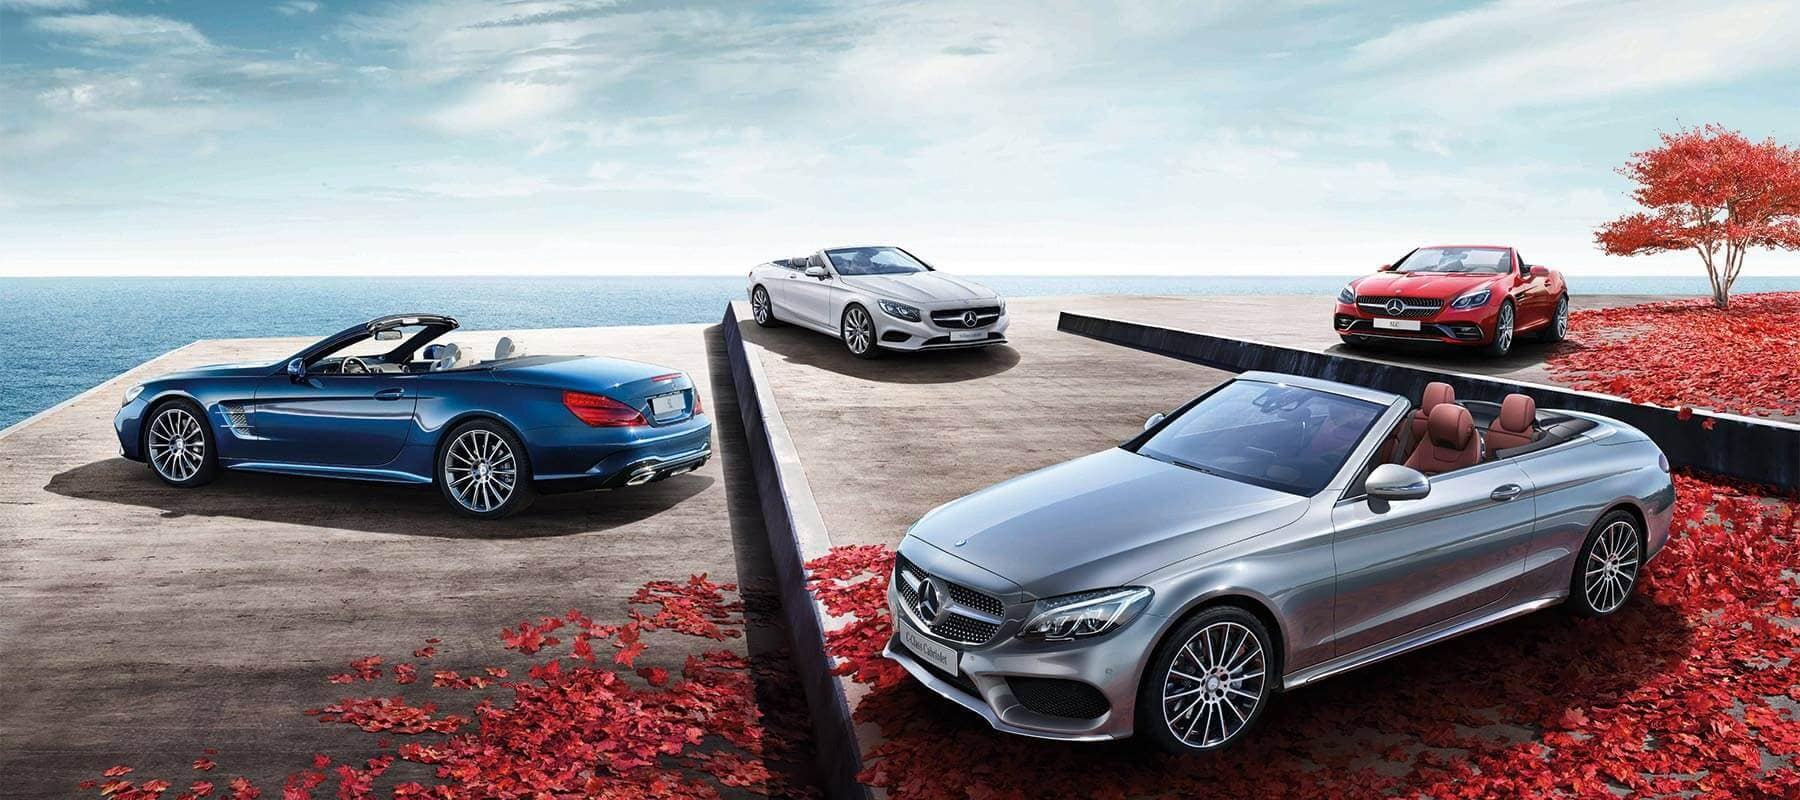 2017 Mercedes-Benz Cabriolet and Roadster